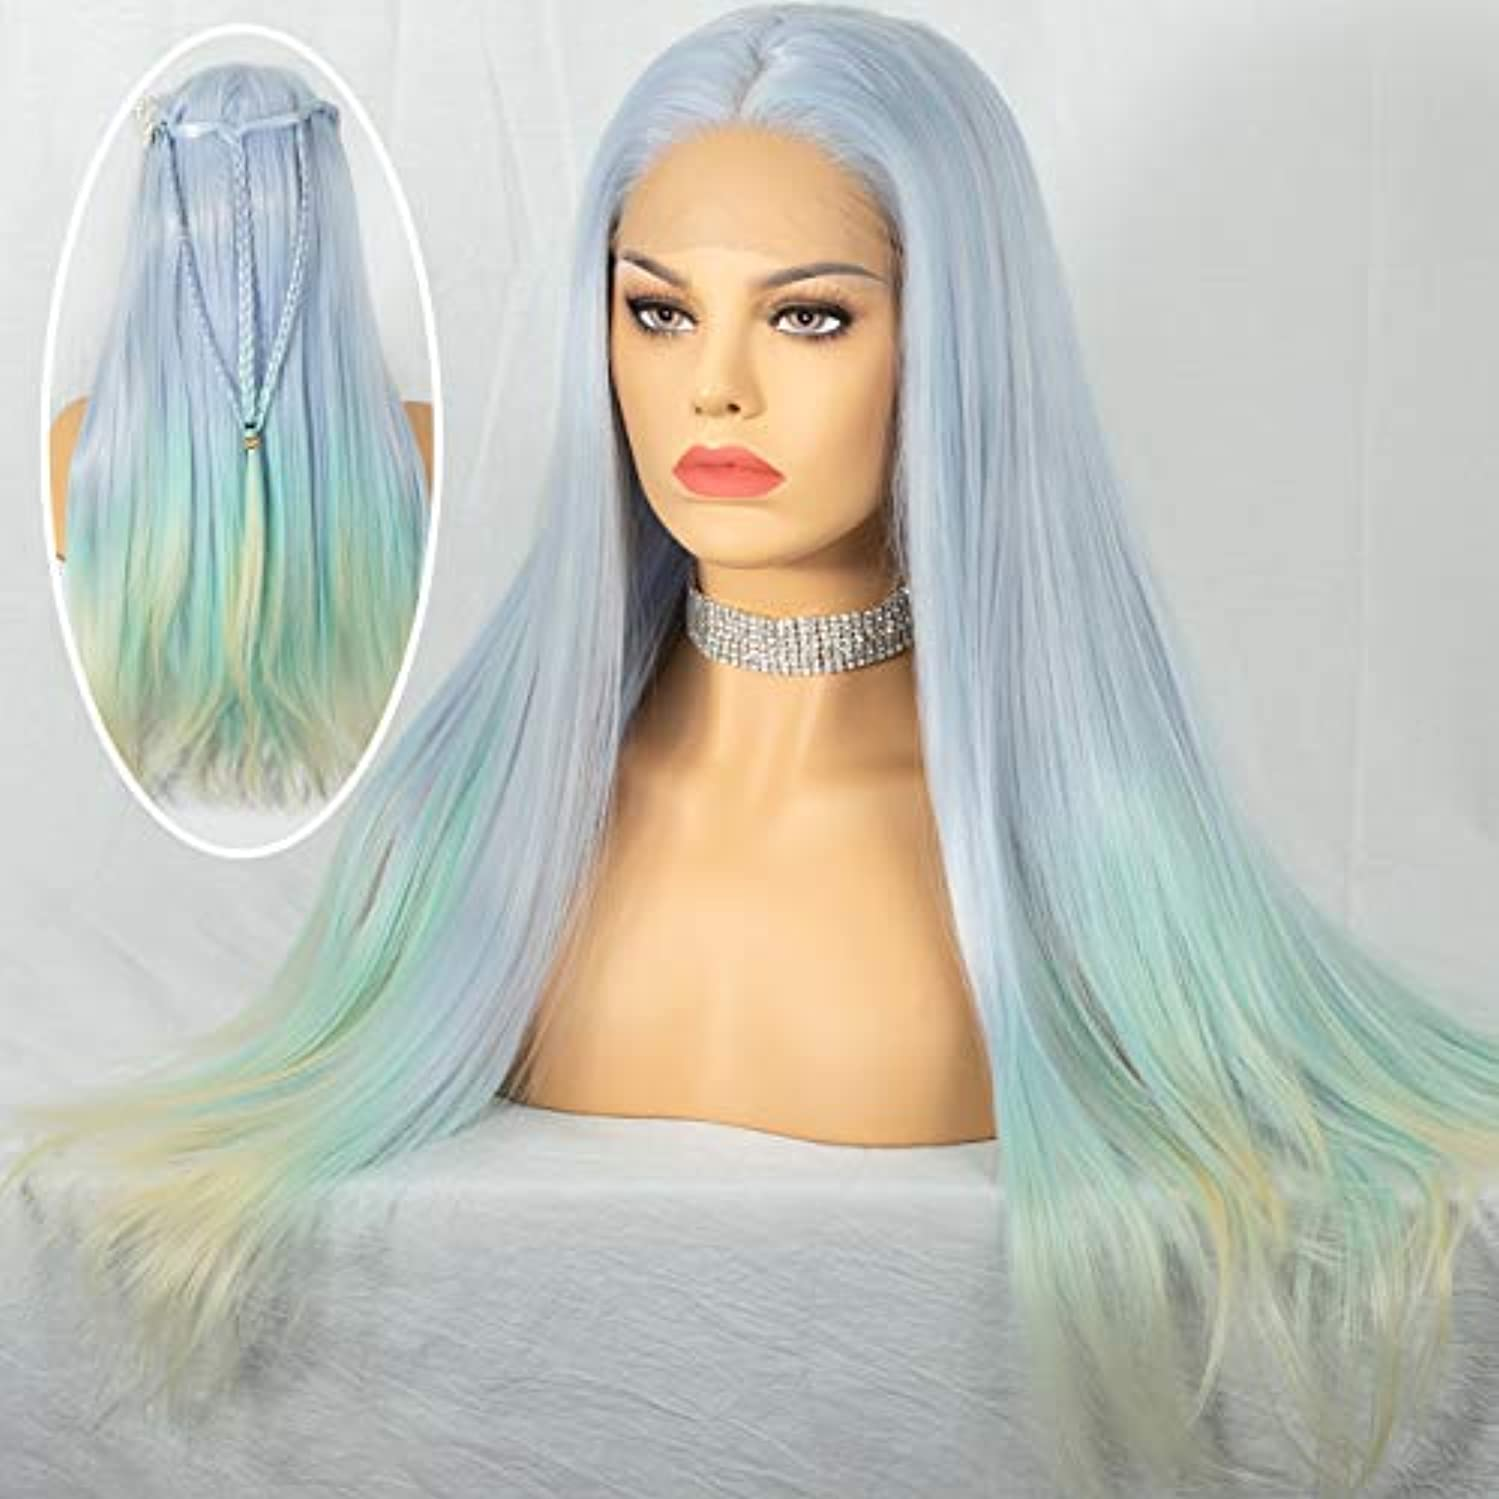 Cosswigs Ombre Blue Lace Front Wig for Women Silky Straight Pastels Mix Light Blue Synthetic Lace Wigs Heat Resistant Fiber Free Part 24inches